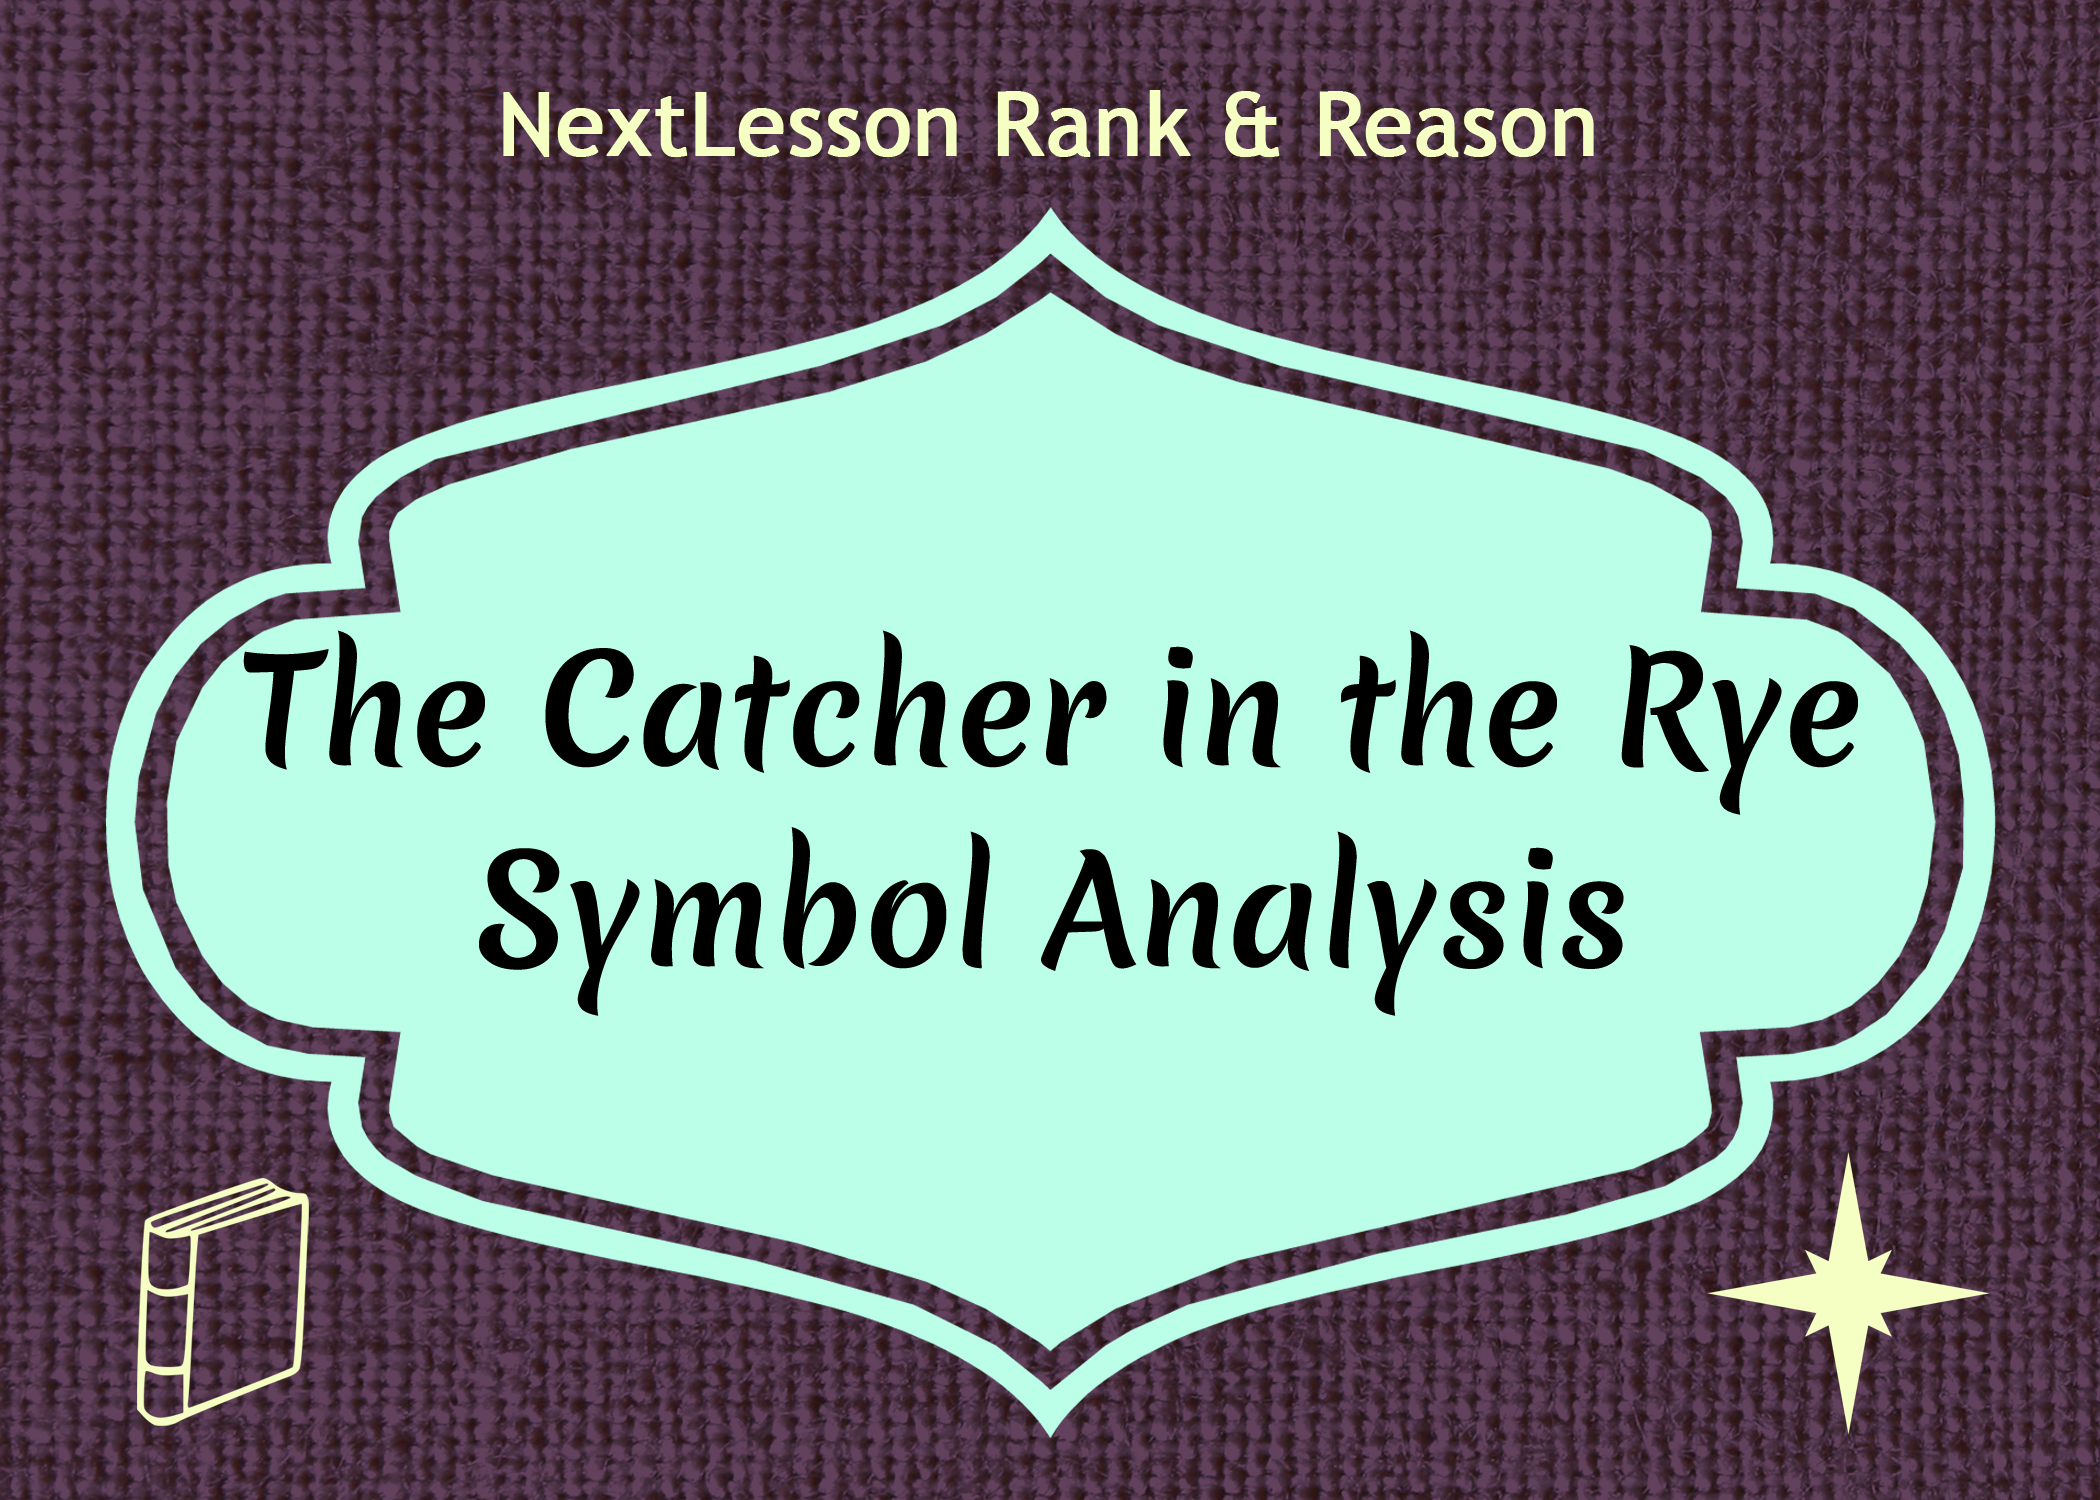 essay for catcher in the ryes Eng 3u1 – the catcher in the rye essay outline assignment task: pick one of the essay prompts below your answer to the prompt will be the thesis of your essay.